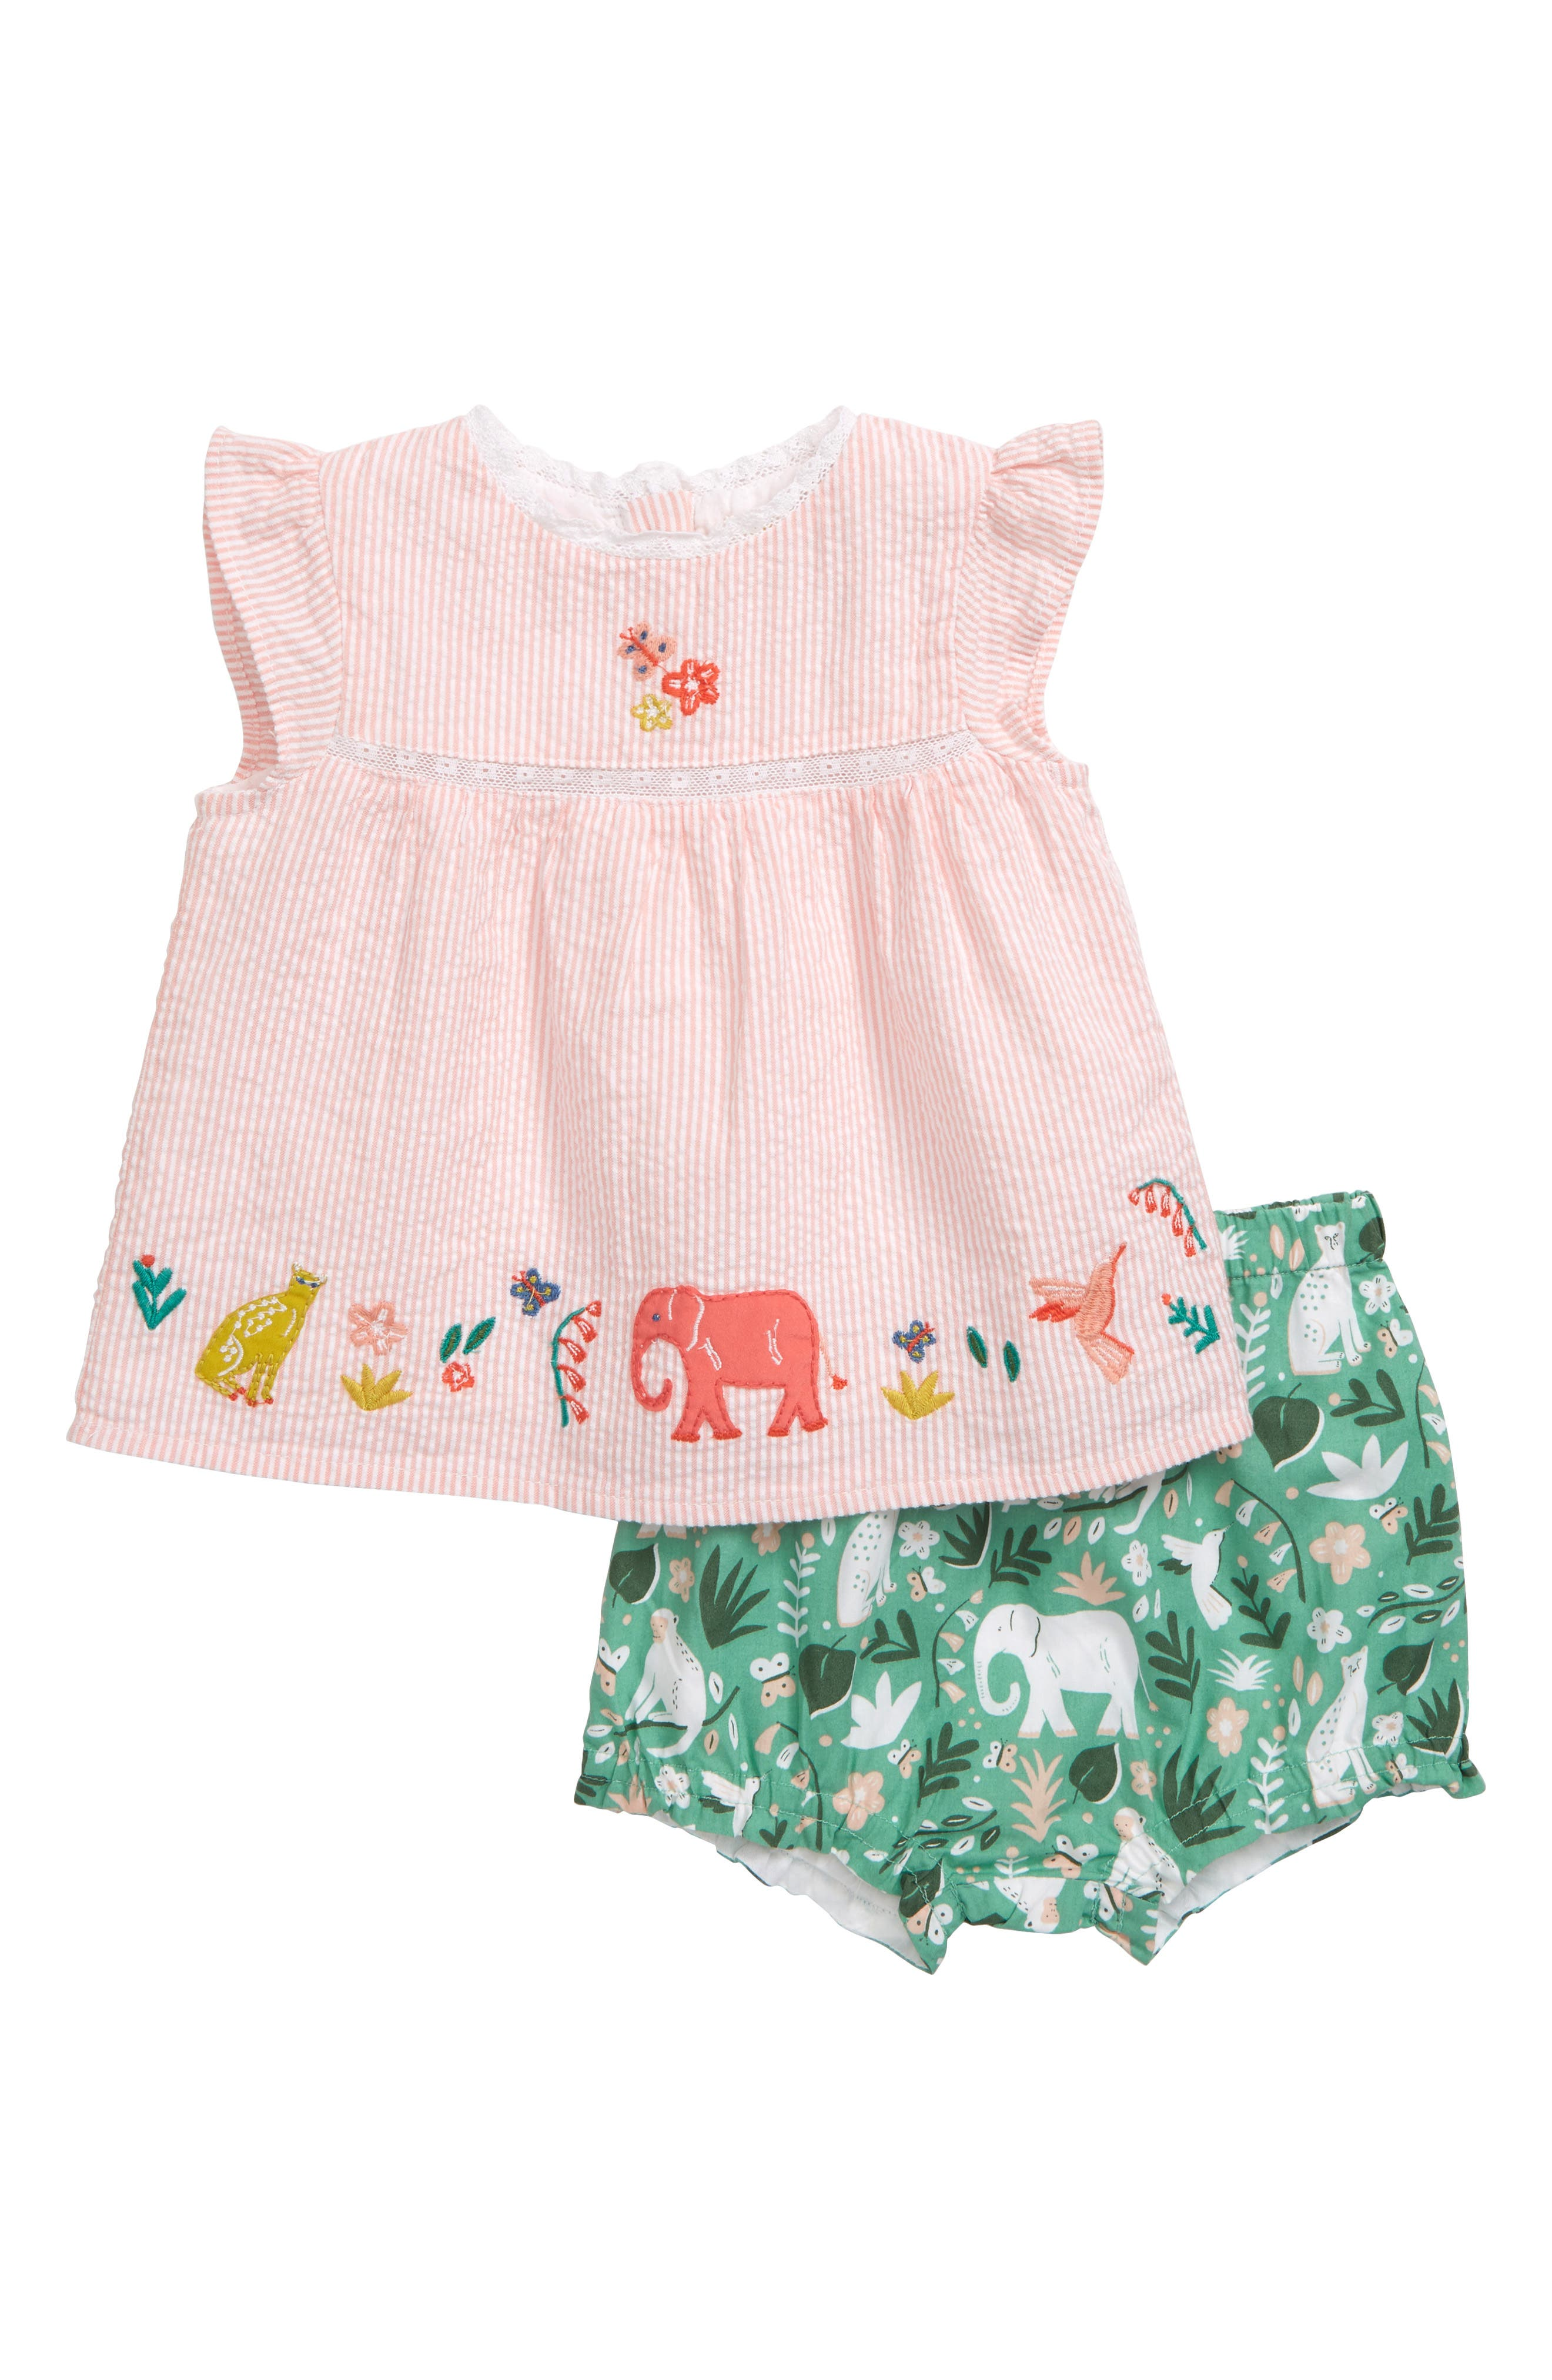 Toddler Girls Mini Boden Sunny Days Embroidered Top  Bubble Shorts Set (Baby  Toddler Girls)